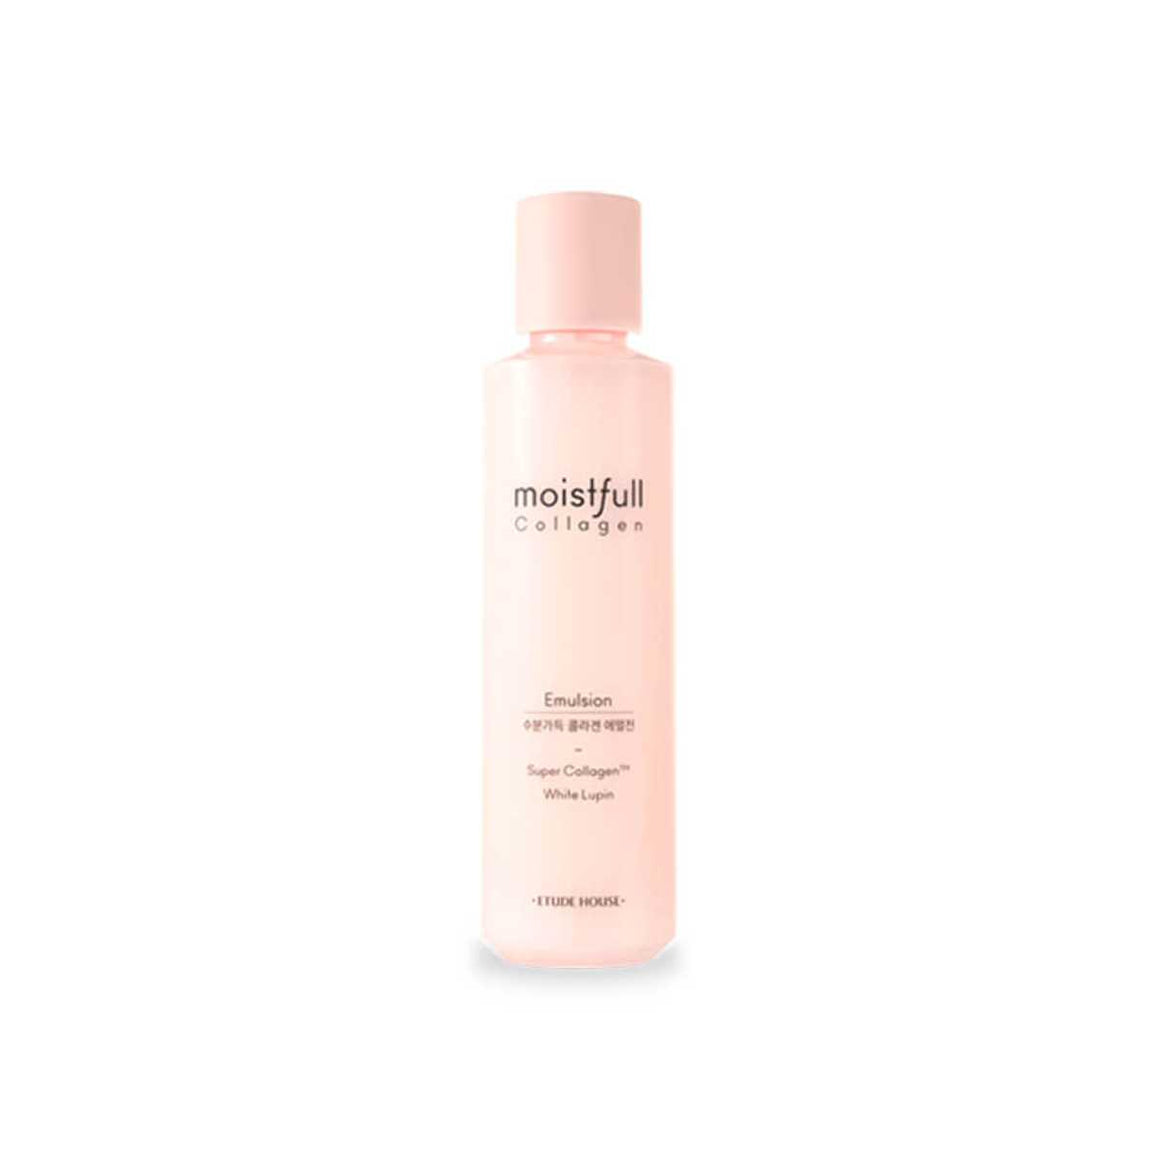 Etude House Moistfull Collagen Emulsion 180ml (NEW)